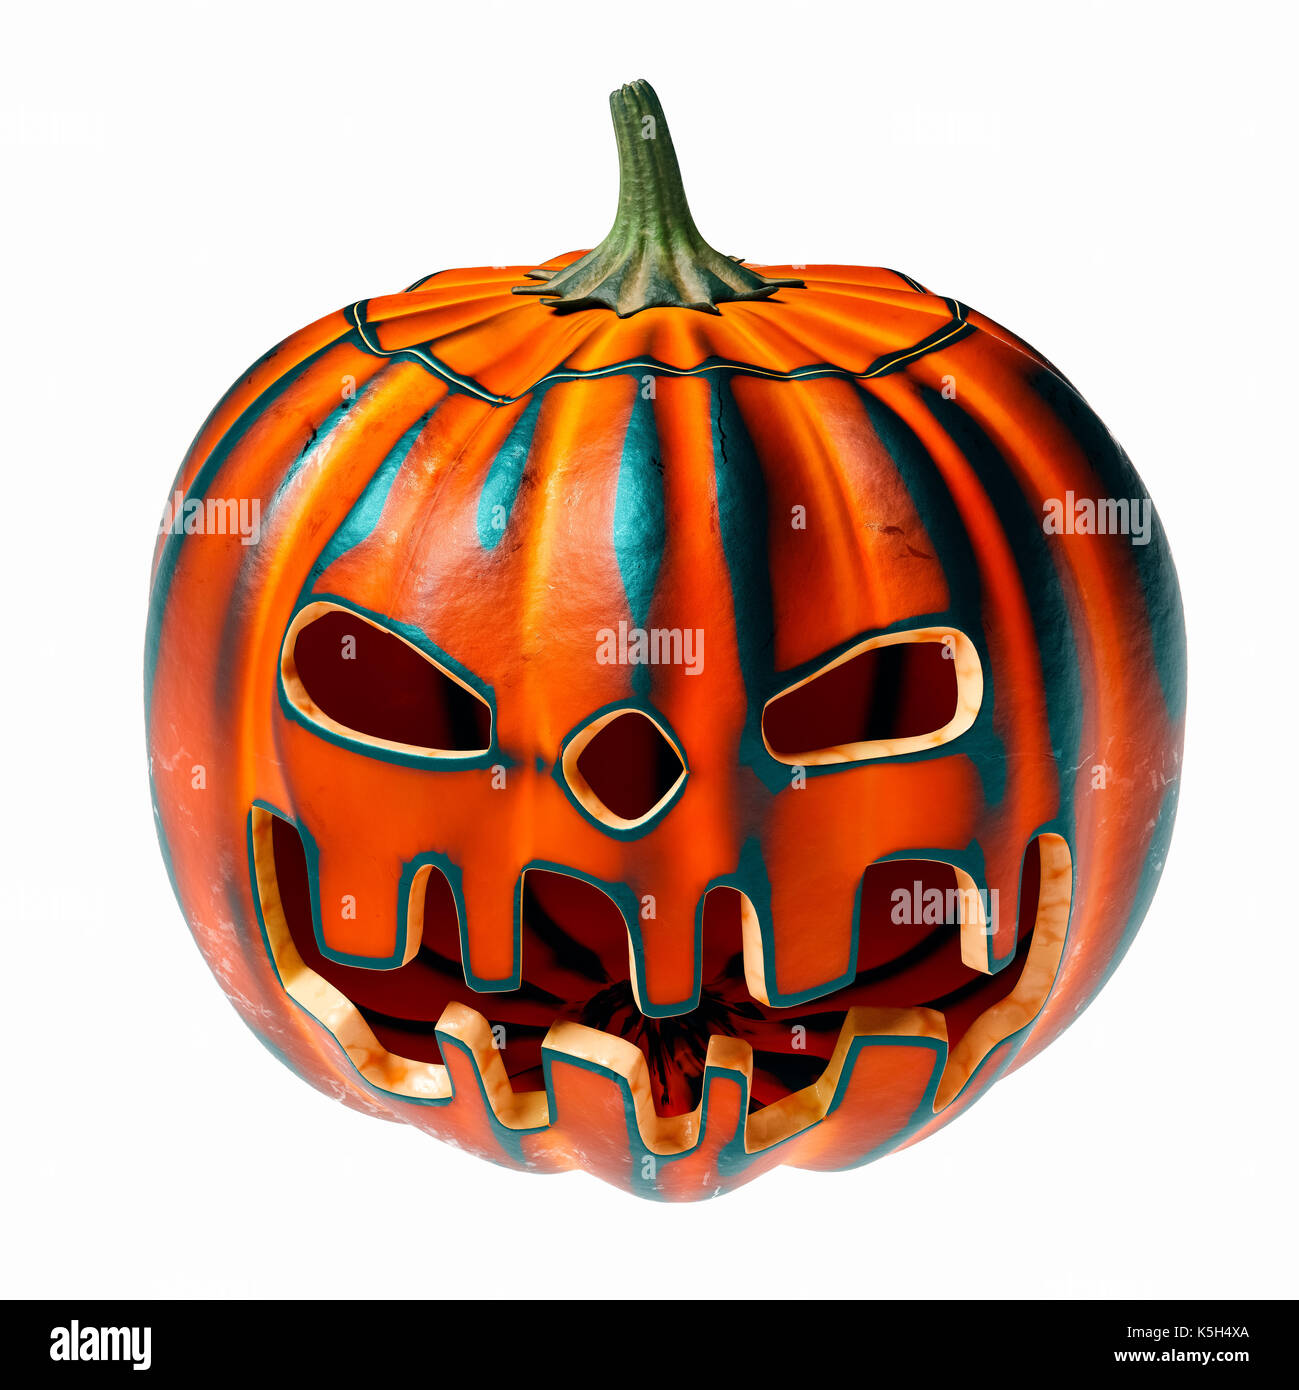 Burnt carved halloween pumpkin, scary face grin - Stock Image